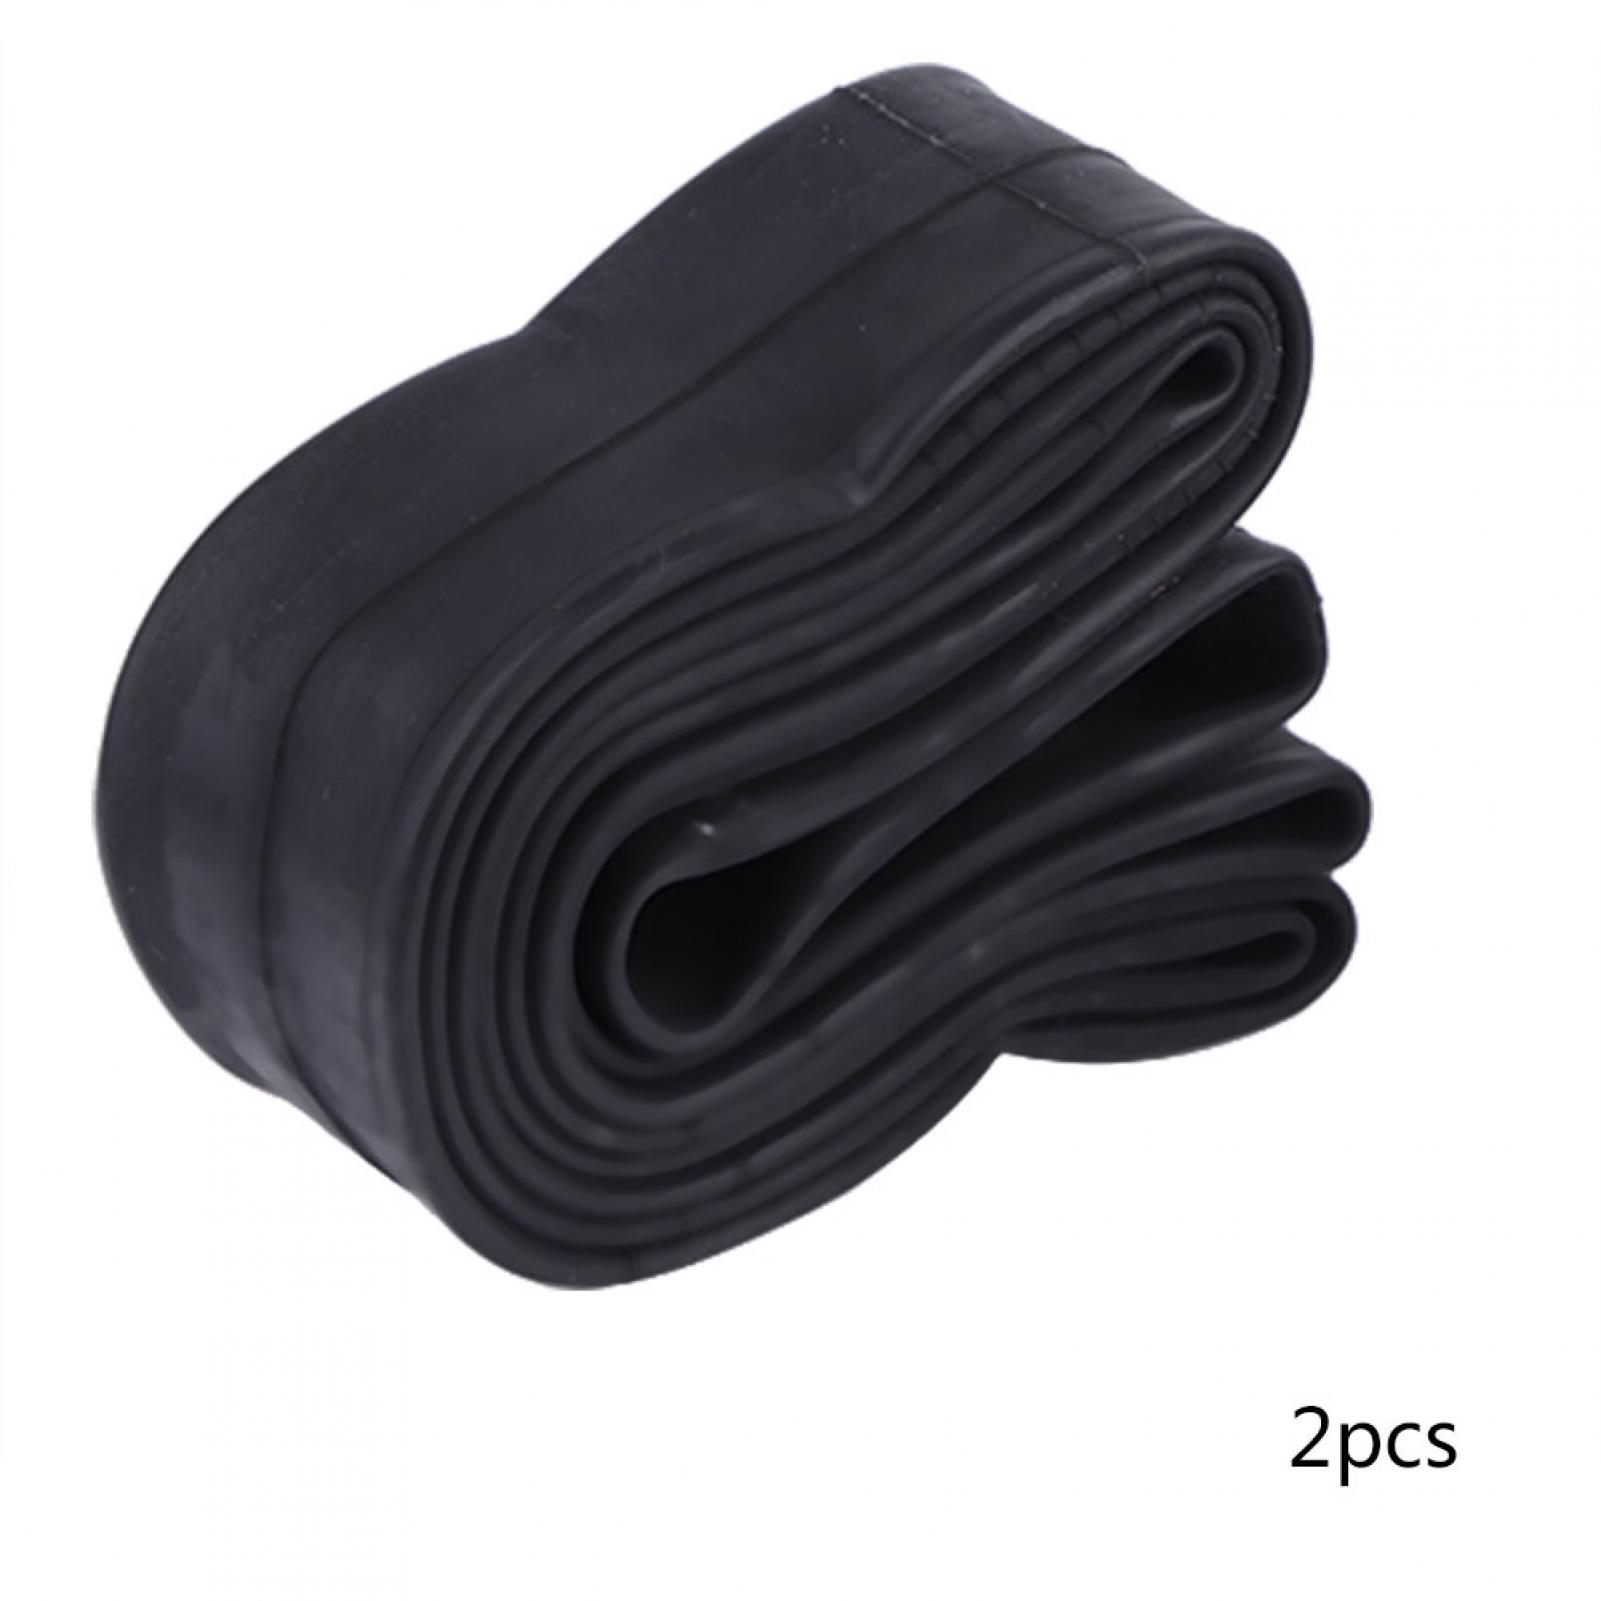 2PCS-Inner-Tube-Tyres-Butyl-Rubber-Interior-Tire-Tubes-for-MTB-Bike-Road-Bicycle thumbnail 31